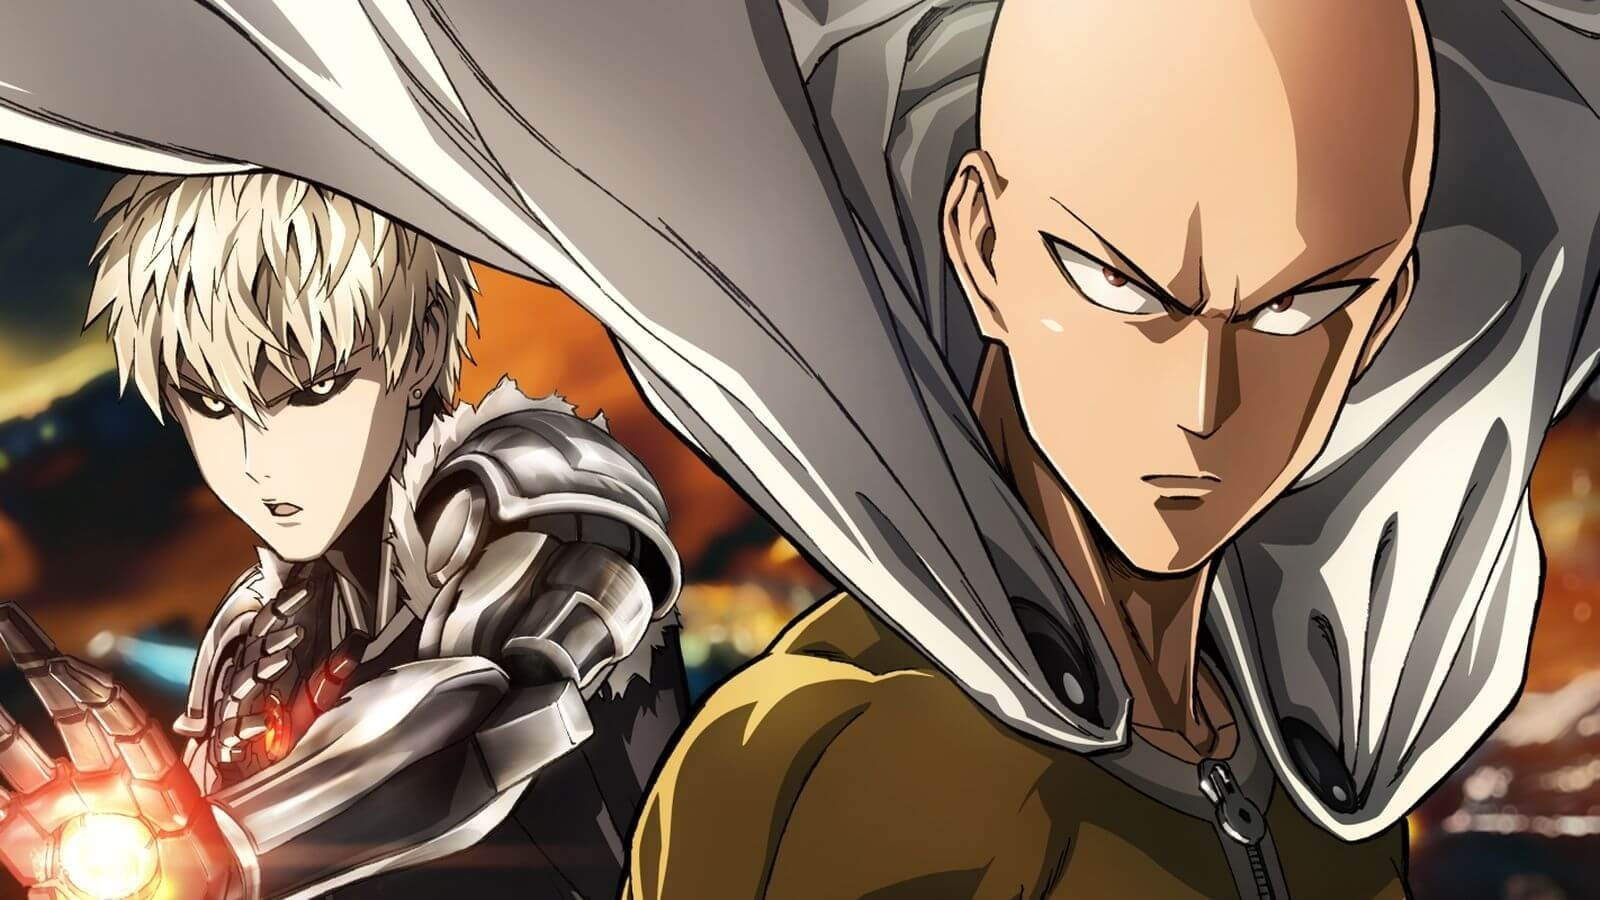 Ванпанчмен / One-Punch Man background